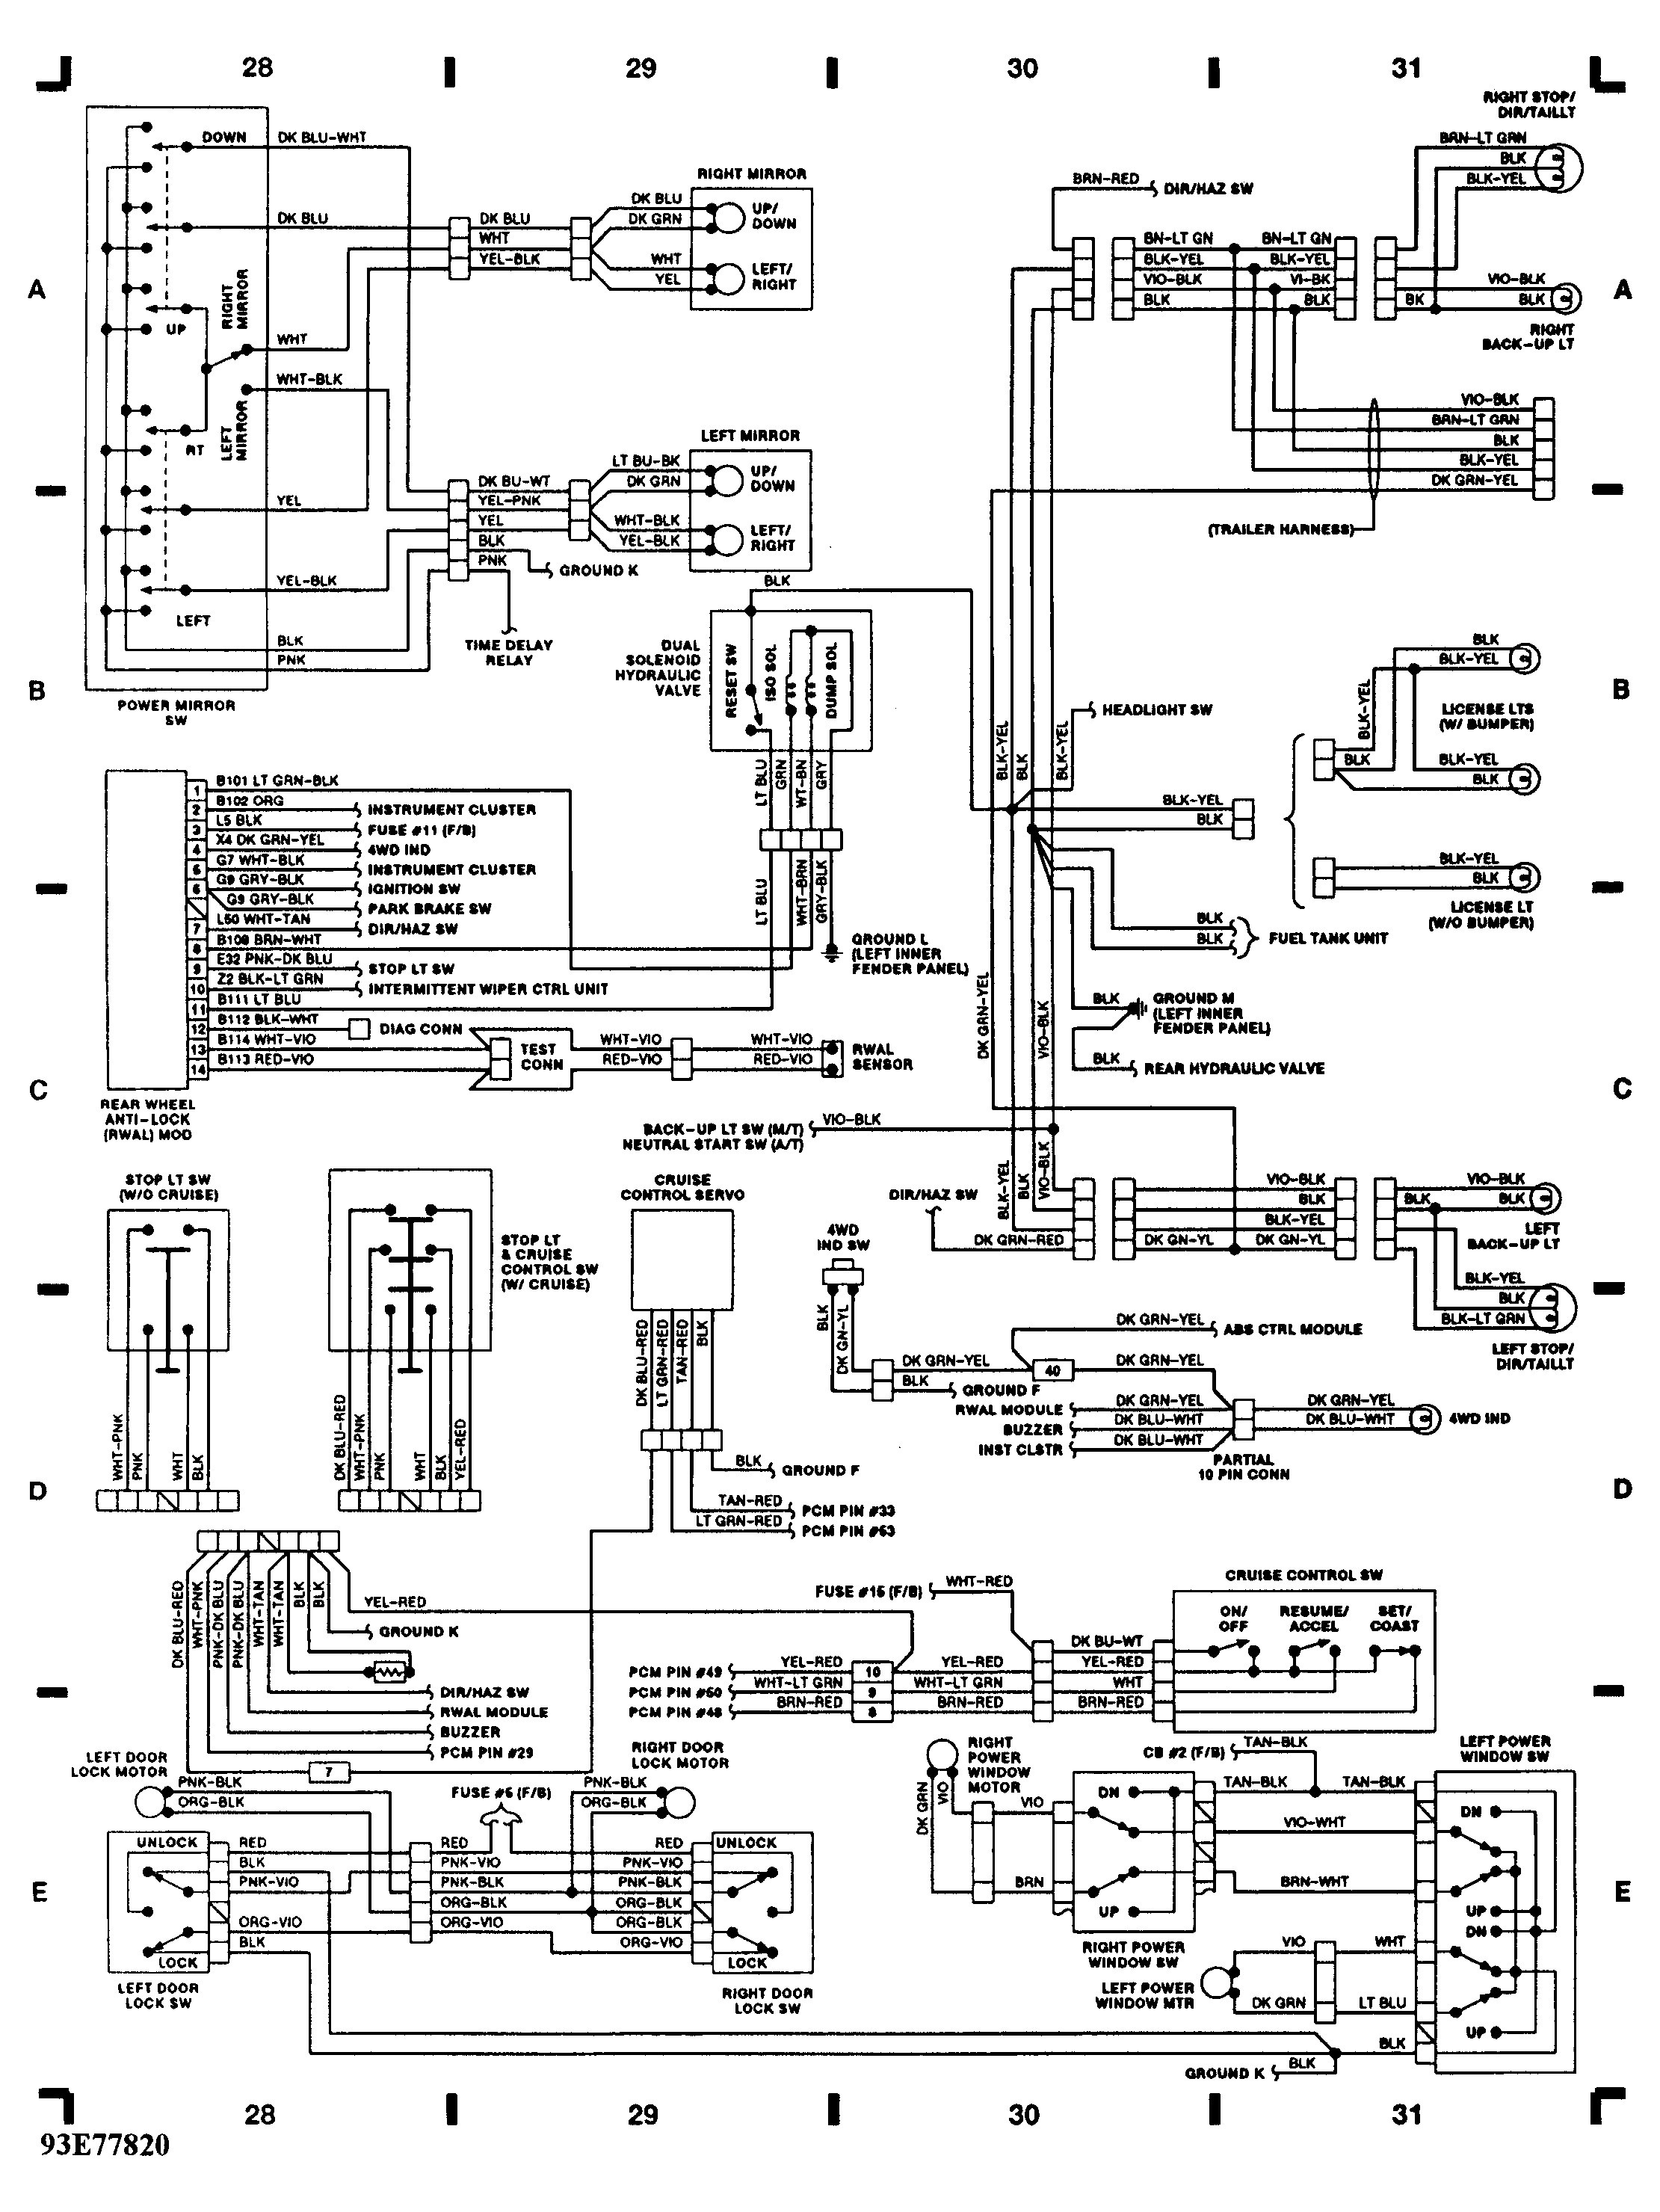 2016 Ram 1500 Parking Lamp Circut Diagram Tail and Parking Lights Not Working 1st Head Light Switch Of 2016 Ram 1500 Parking Lamp Circut Diagram